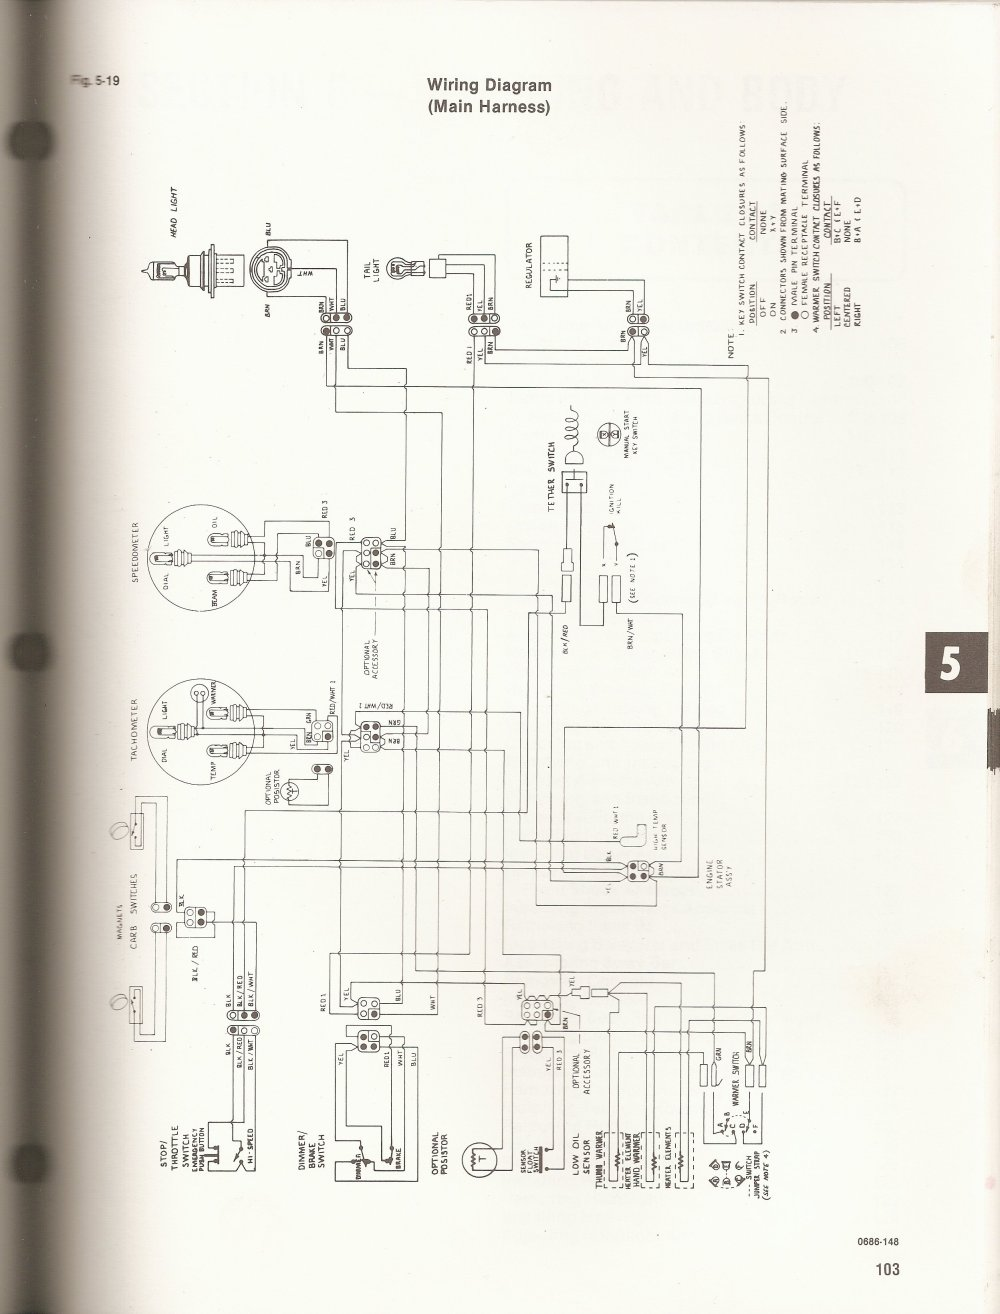 medium resolution of arctic cat wildcat wiring diagram wiring diagram today 1992 arctic cat wildcat 700 wiring diagram 1992 arctic cat 700 wildcat wiring diagram